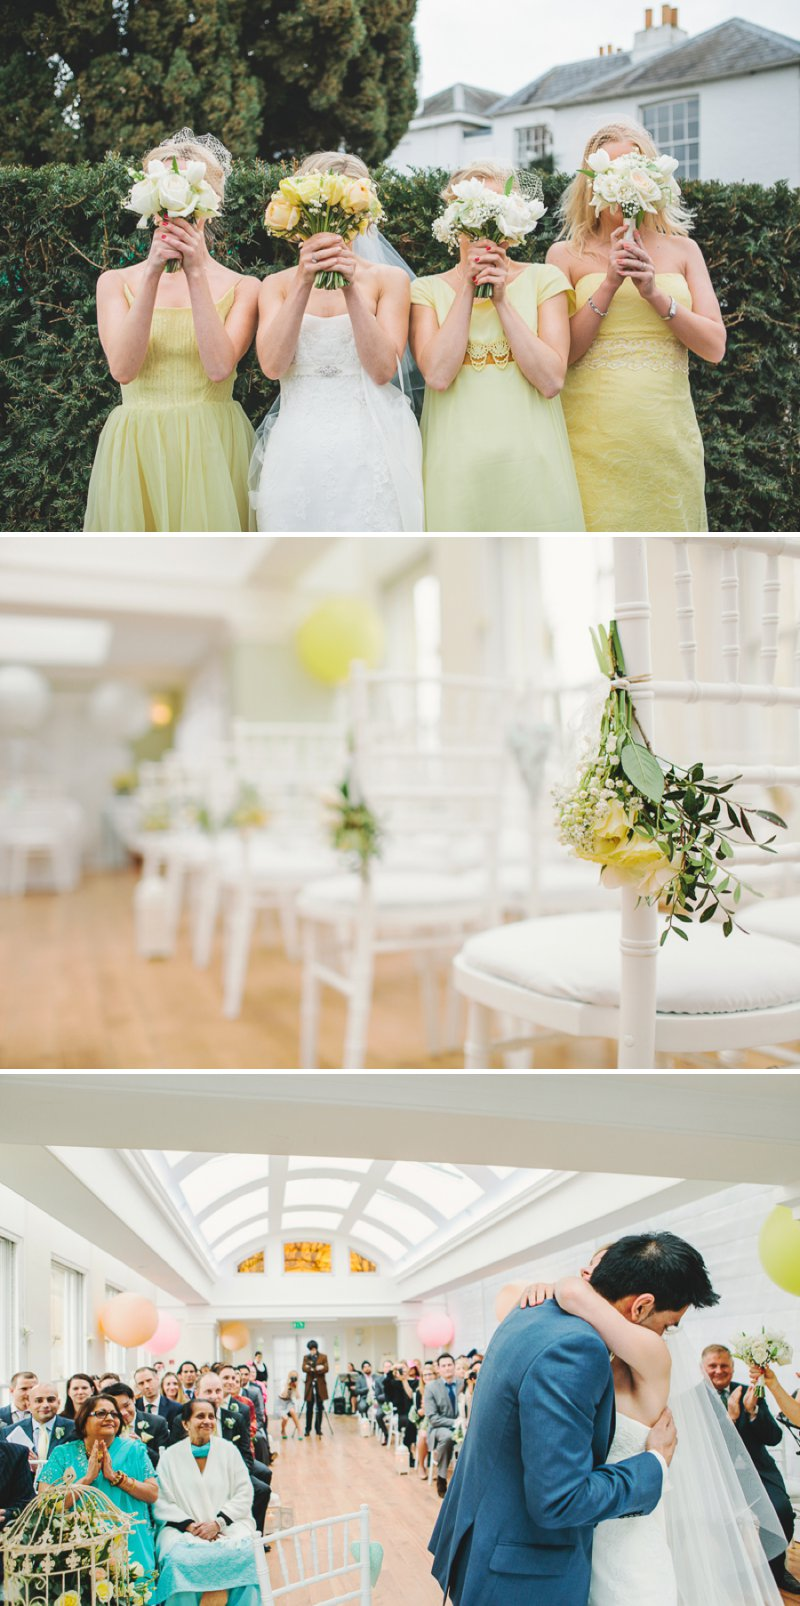 Yellow Themed Vintage Inspired Easter Wedding At Pembroke Lodge Richmond Park With Bride In Balira By Pronovias And Burberry Sandals With Groom In Blue Reiss Suit And Bridesmaids In Yellow Vintage Dresses With Images By Shell De Mar 1